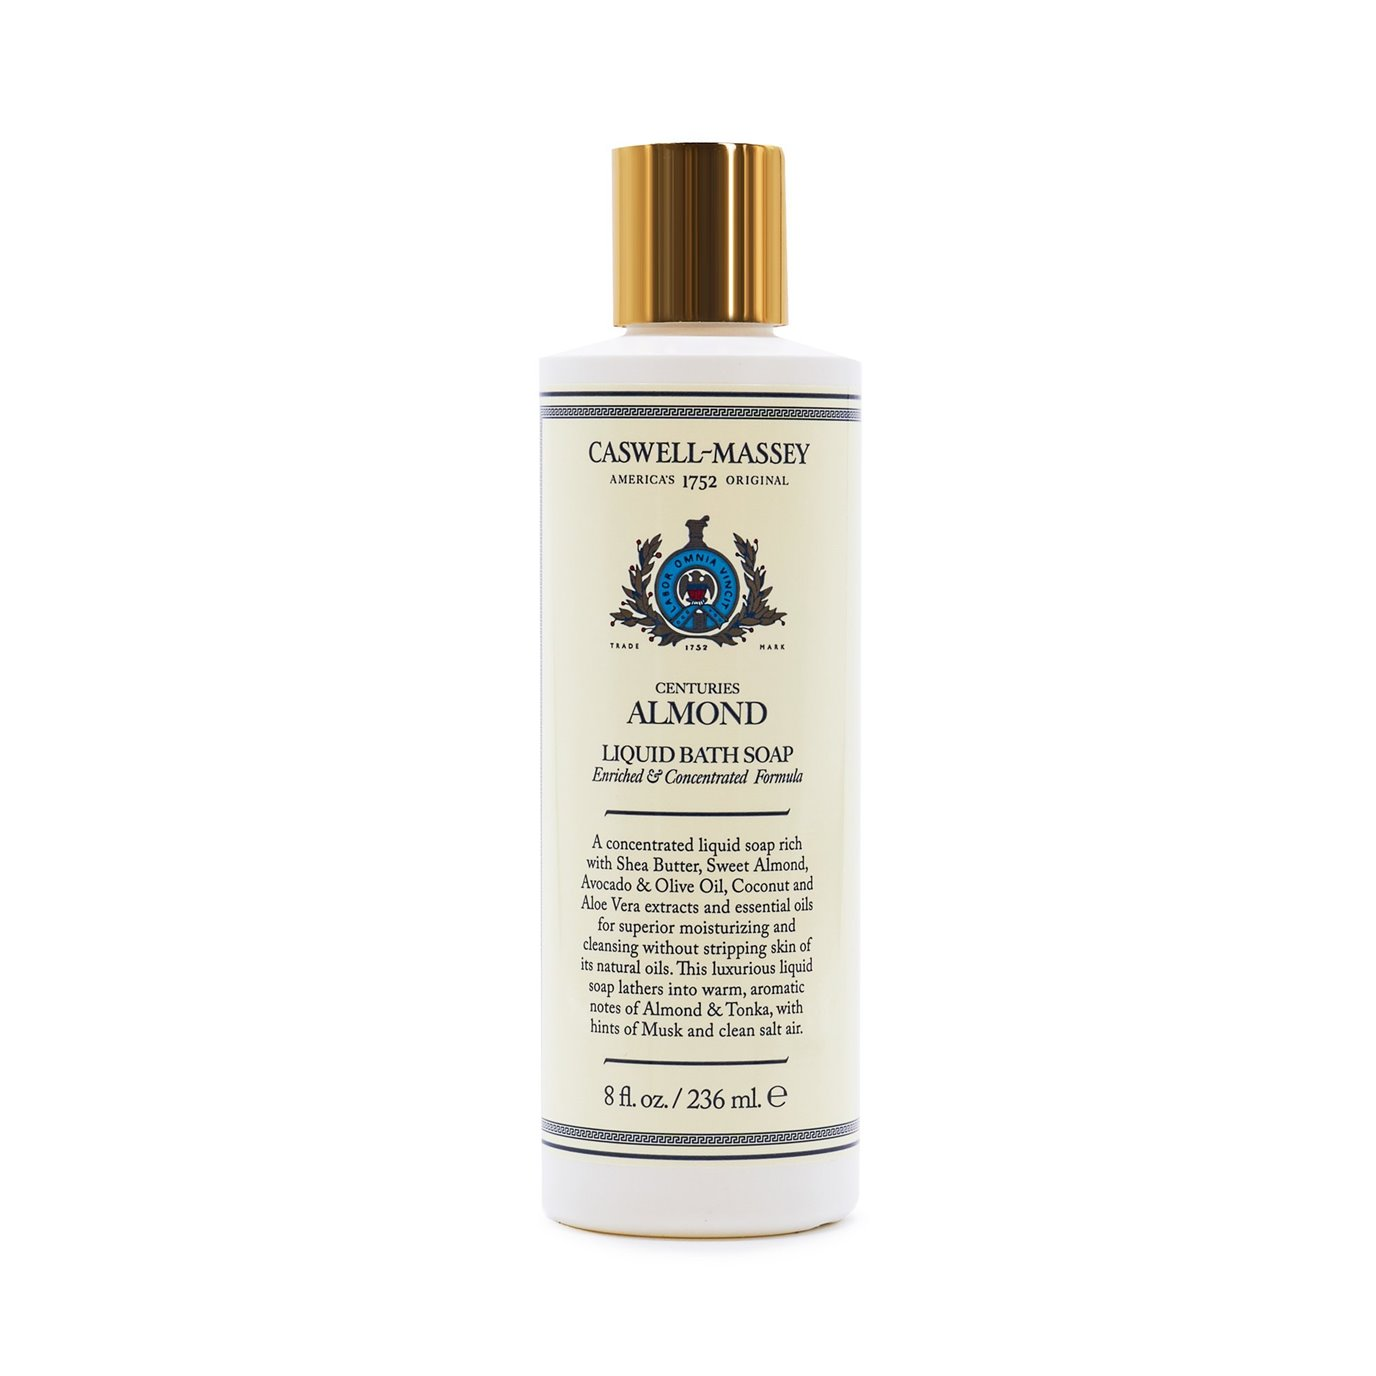 Caswell-Massey Almond Liquid Bath Soap